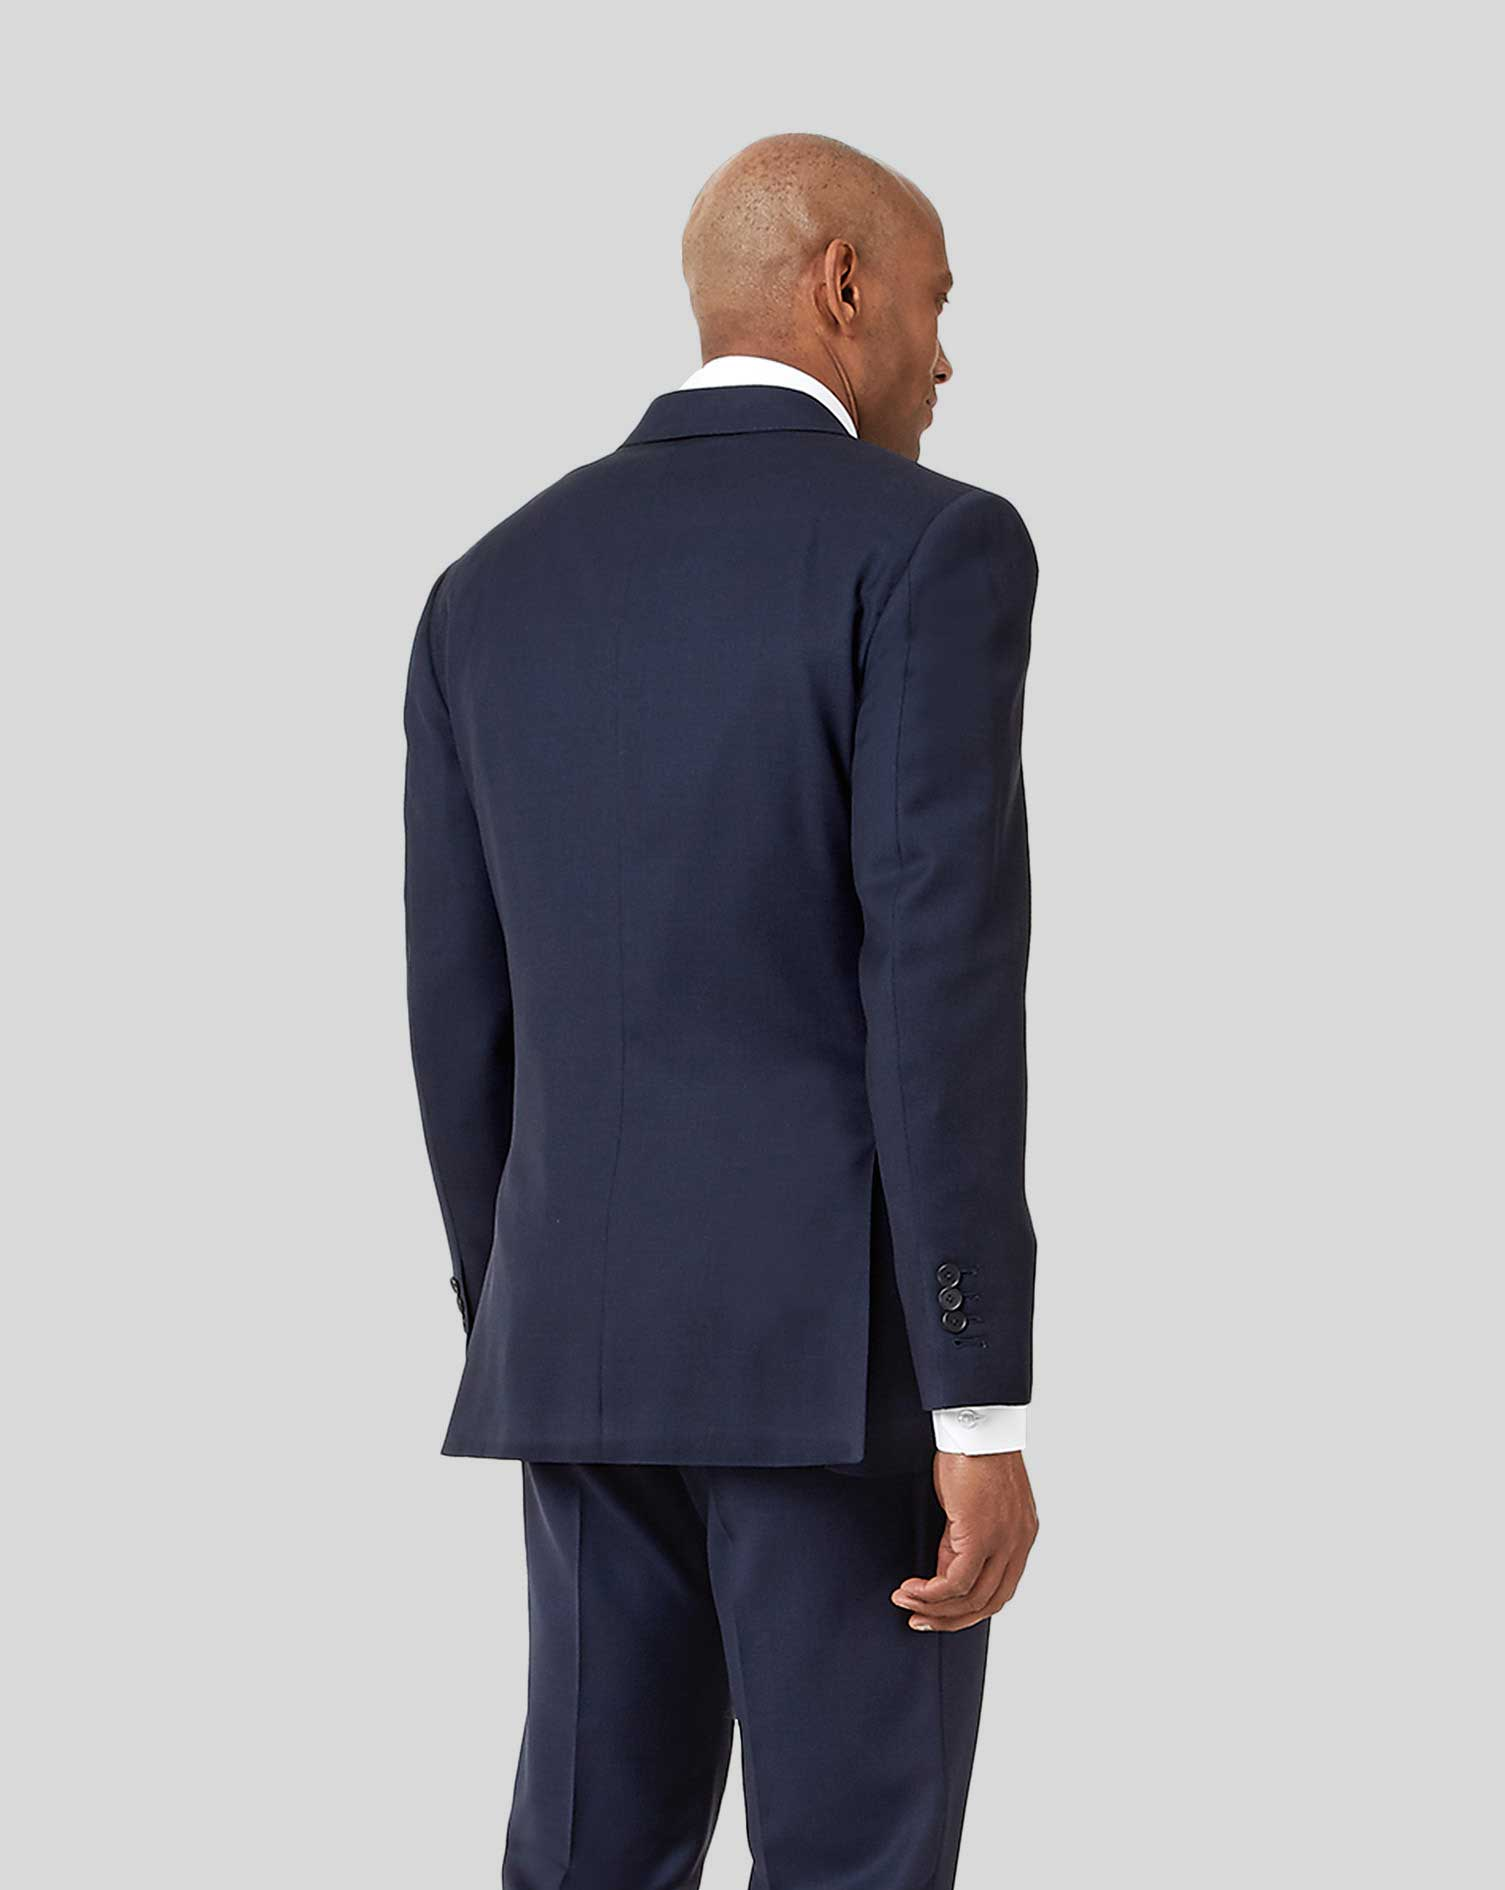 Navy slim fit birdseye travel suit jacket